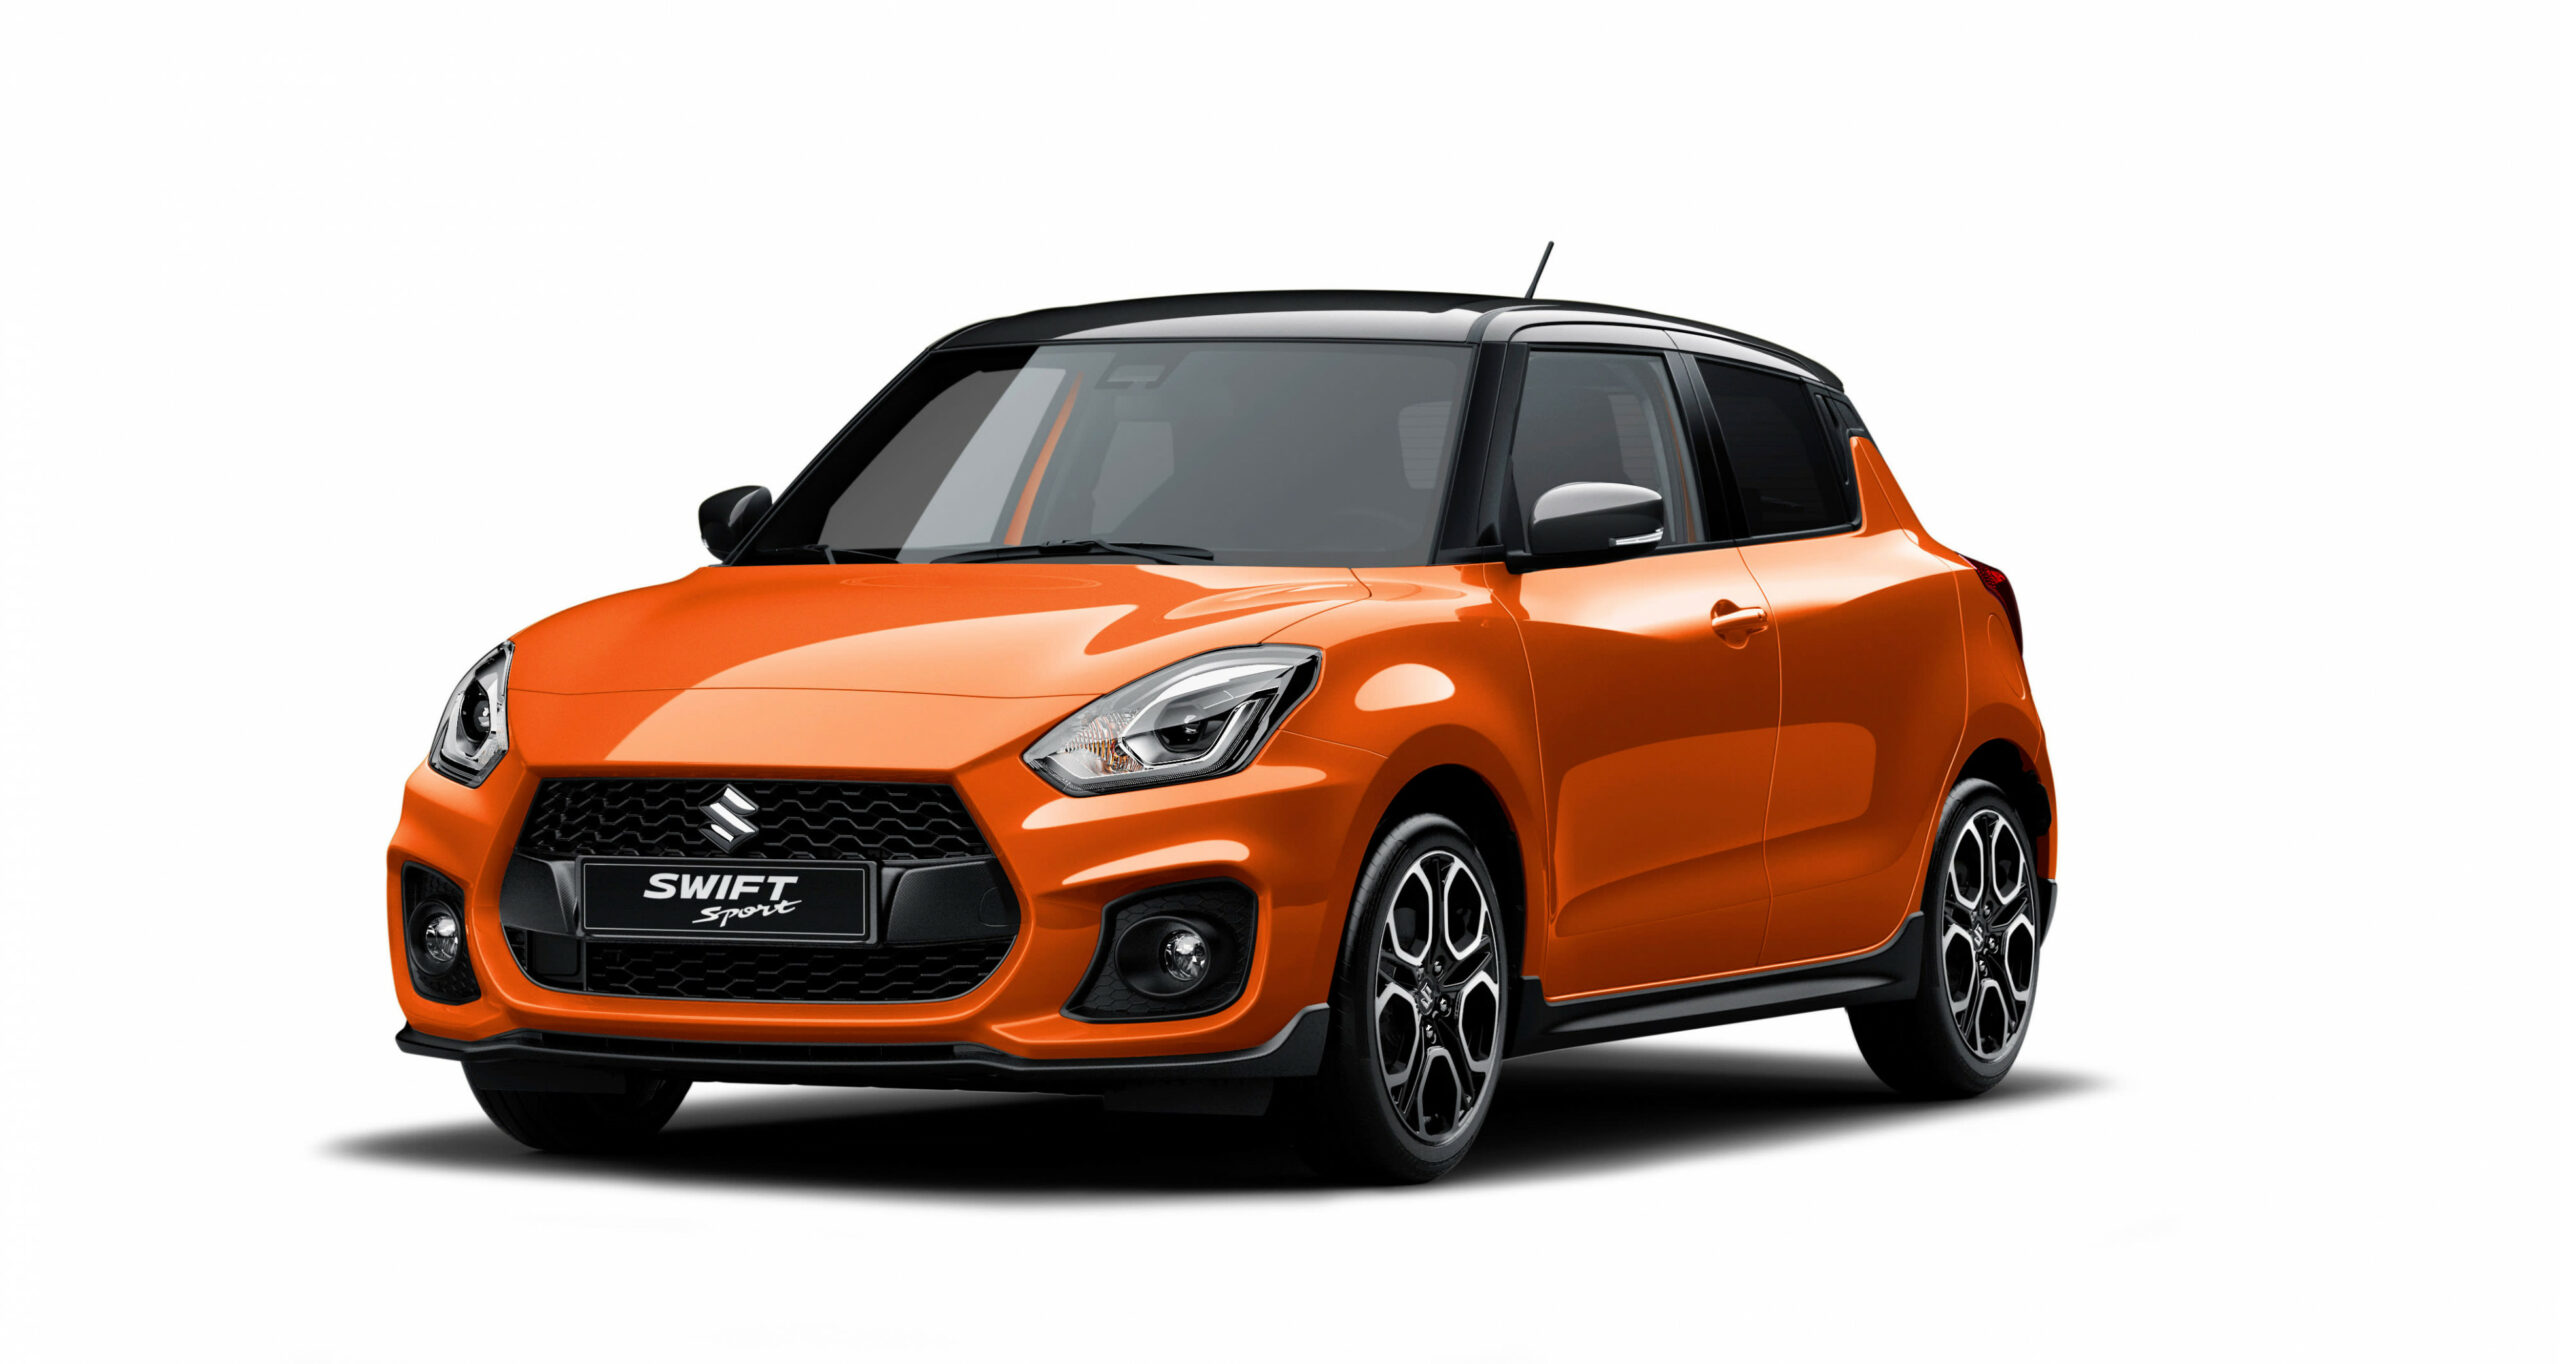 Specs 2022 Suzuki Swift